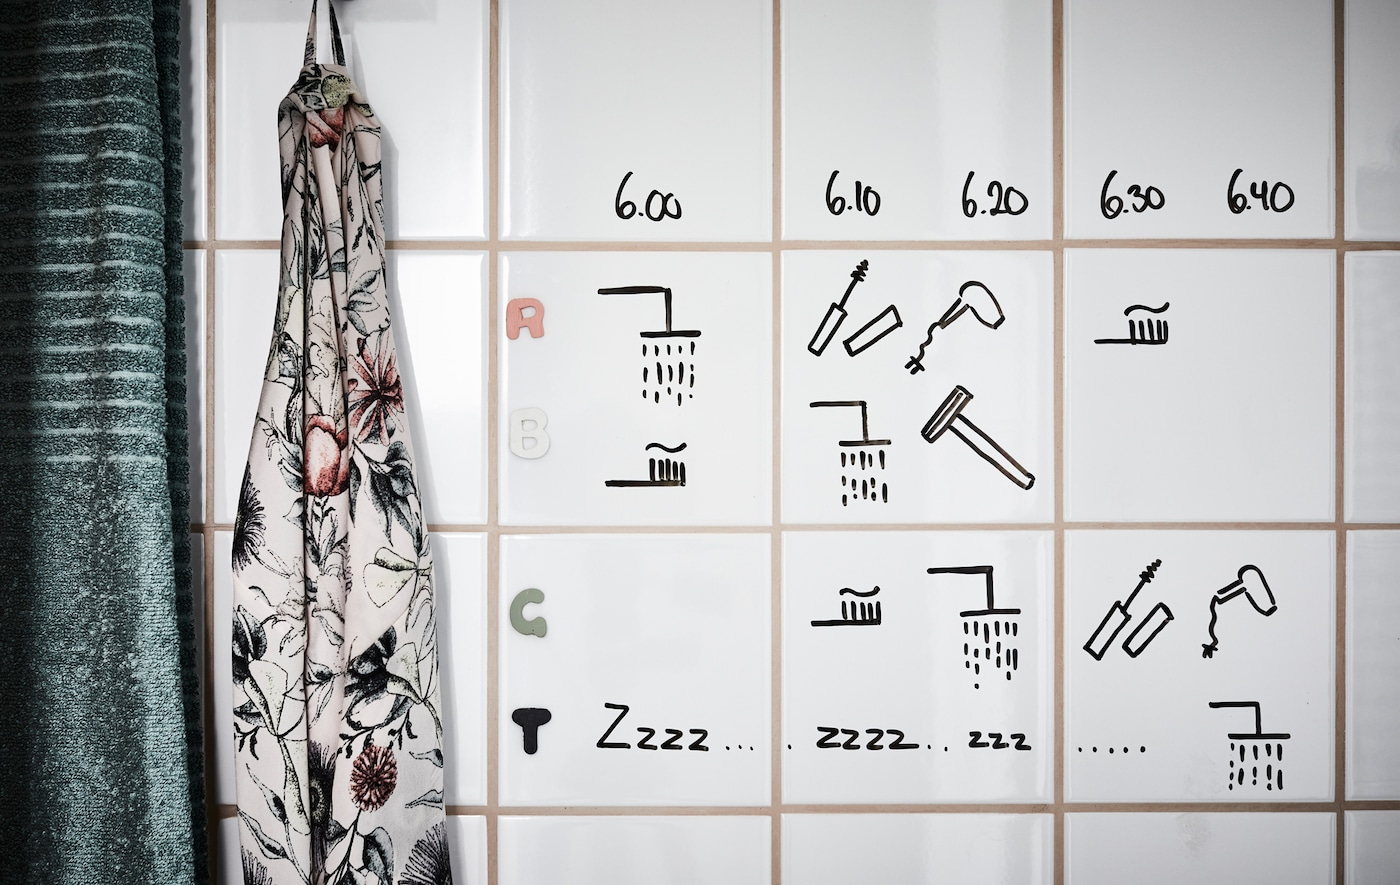 A hand written time schedule made using black marker pen, drawn on white bathroom tiles.